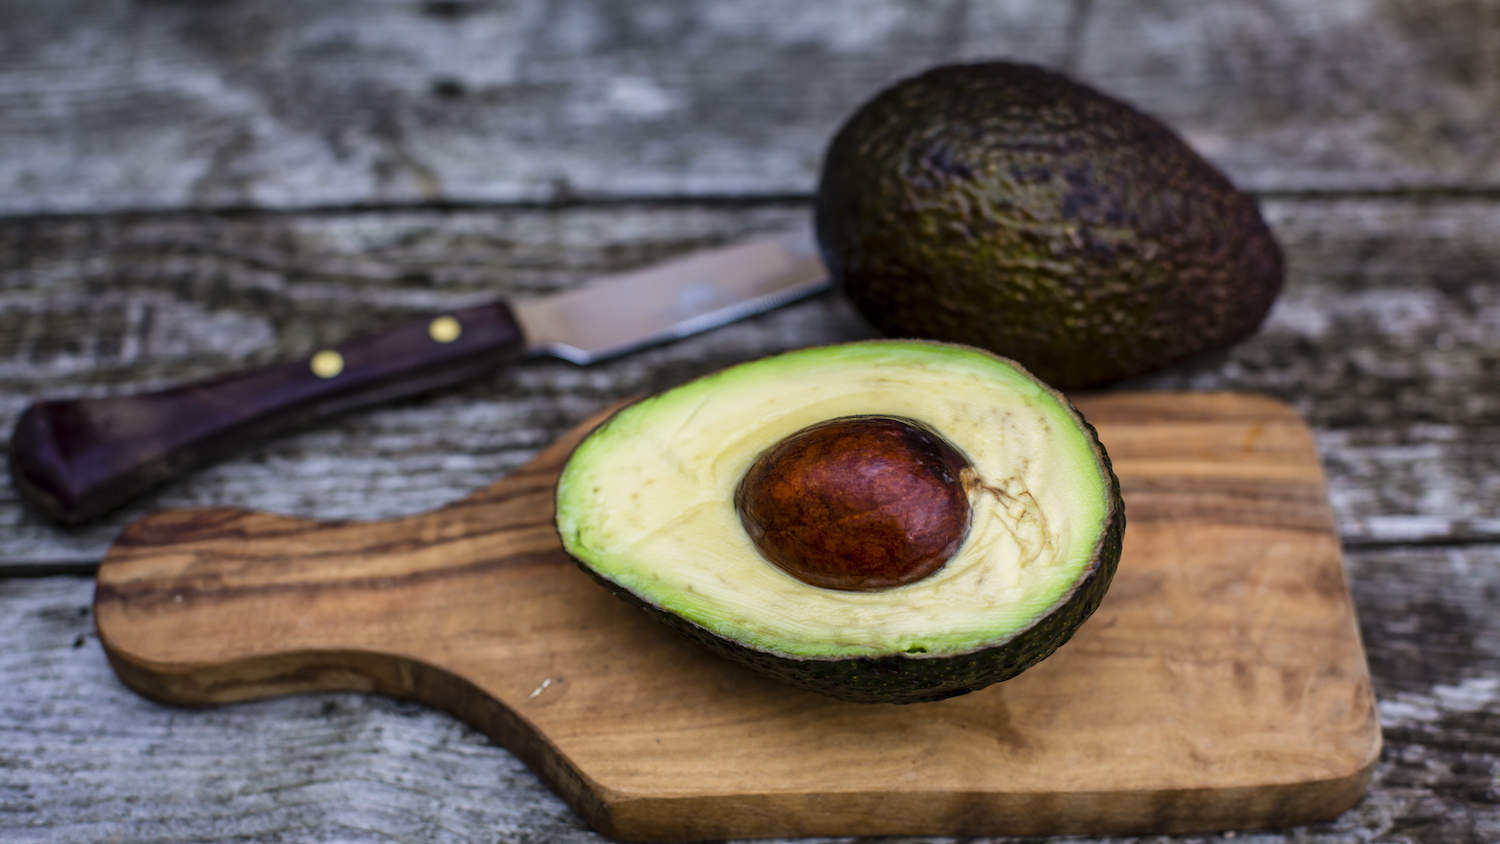 Injuries Caused by Avocados Are on the Rise